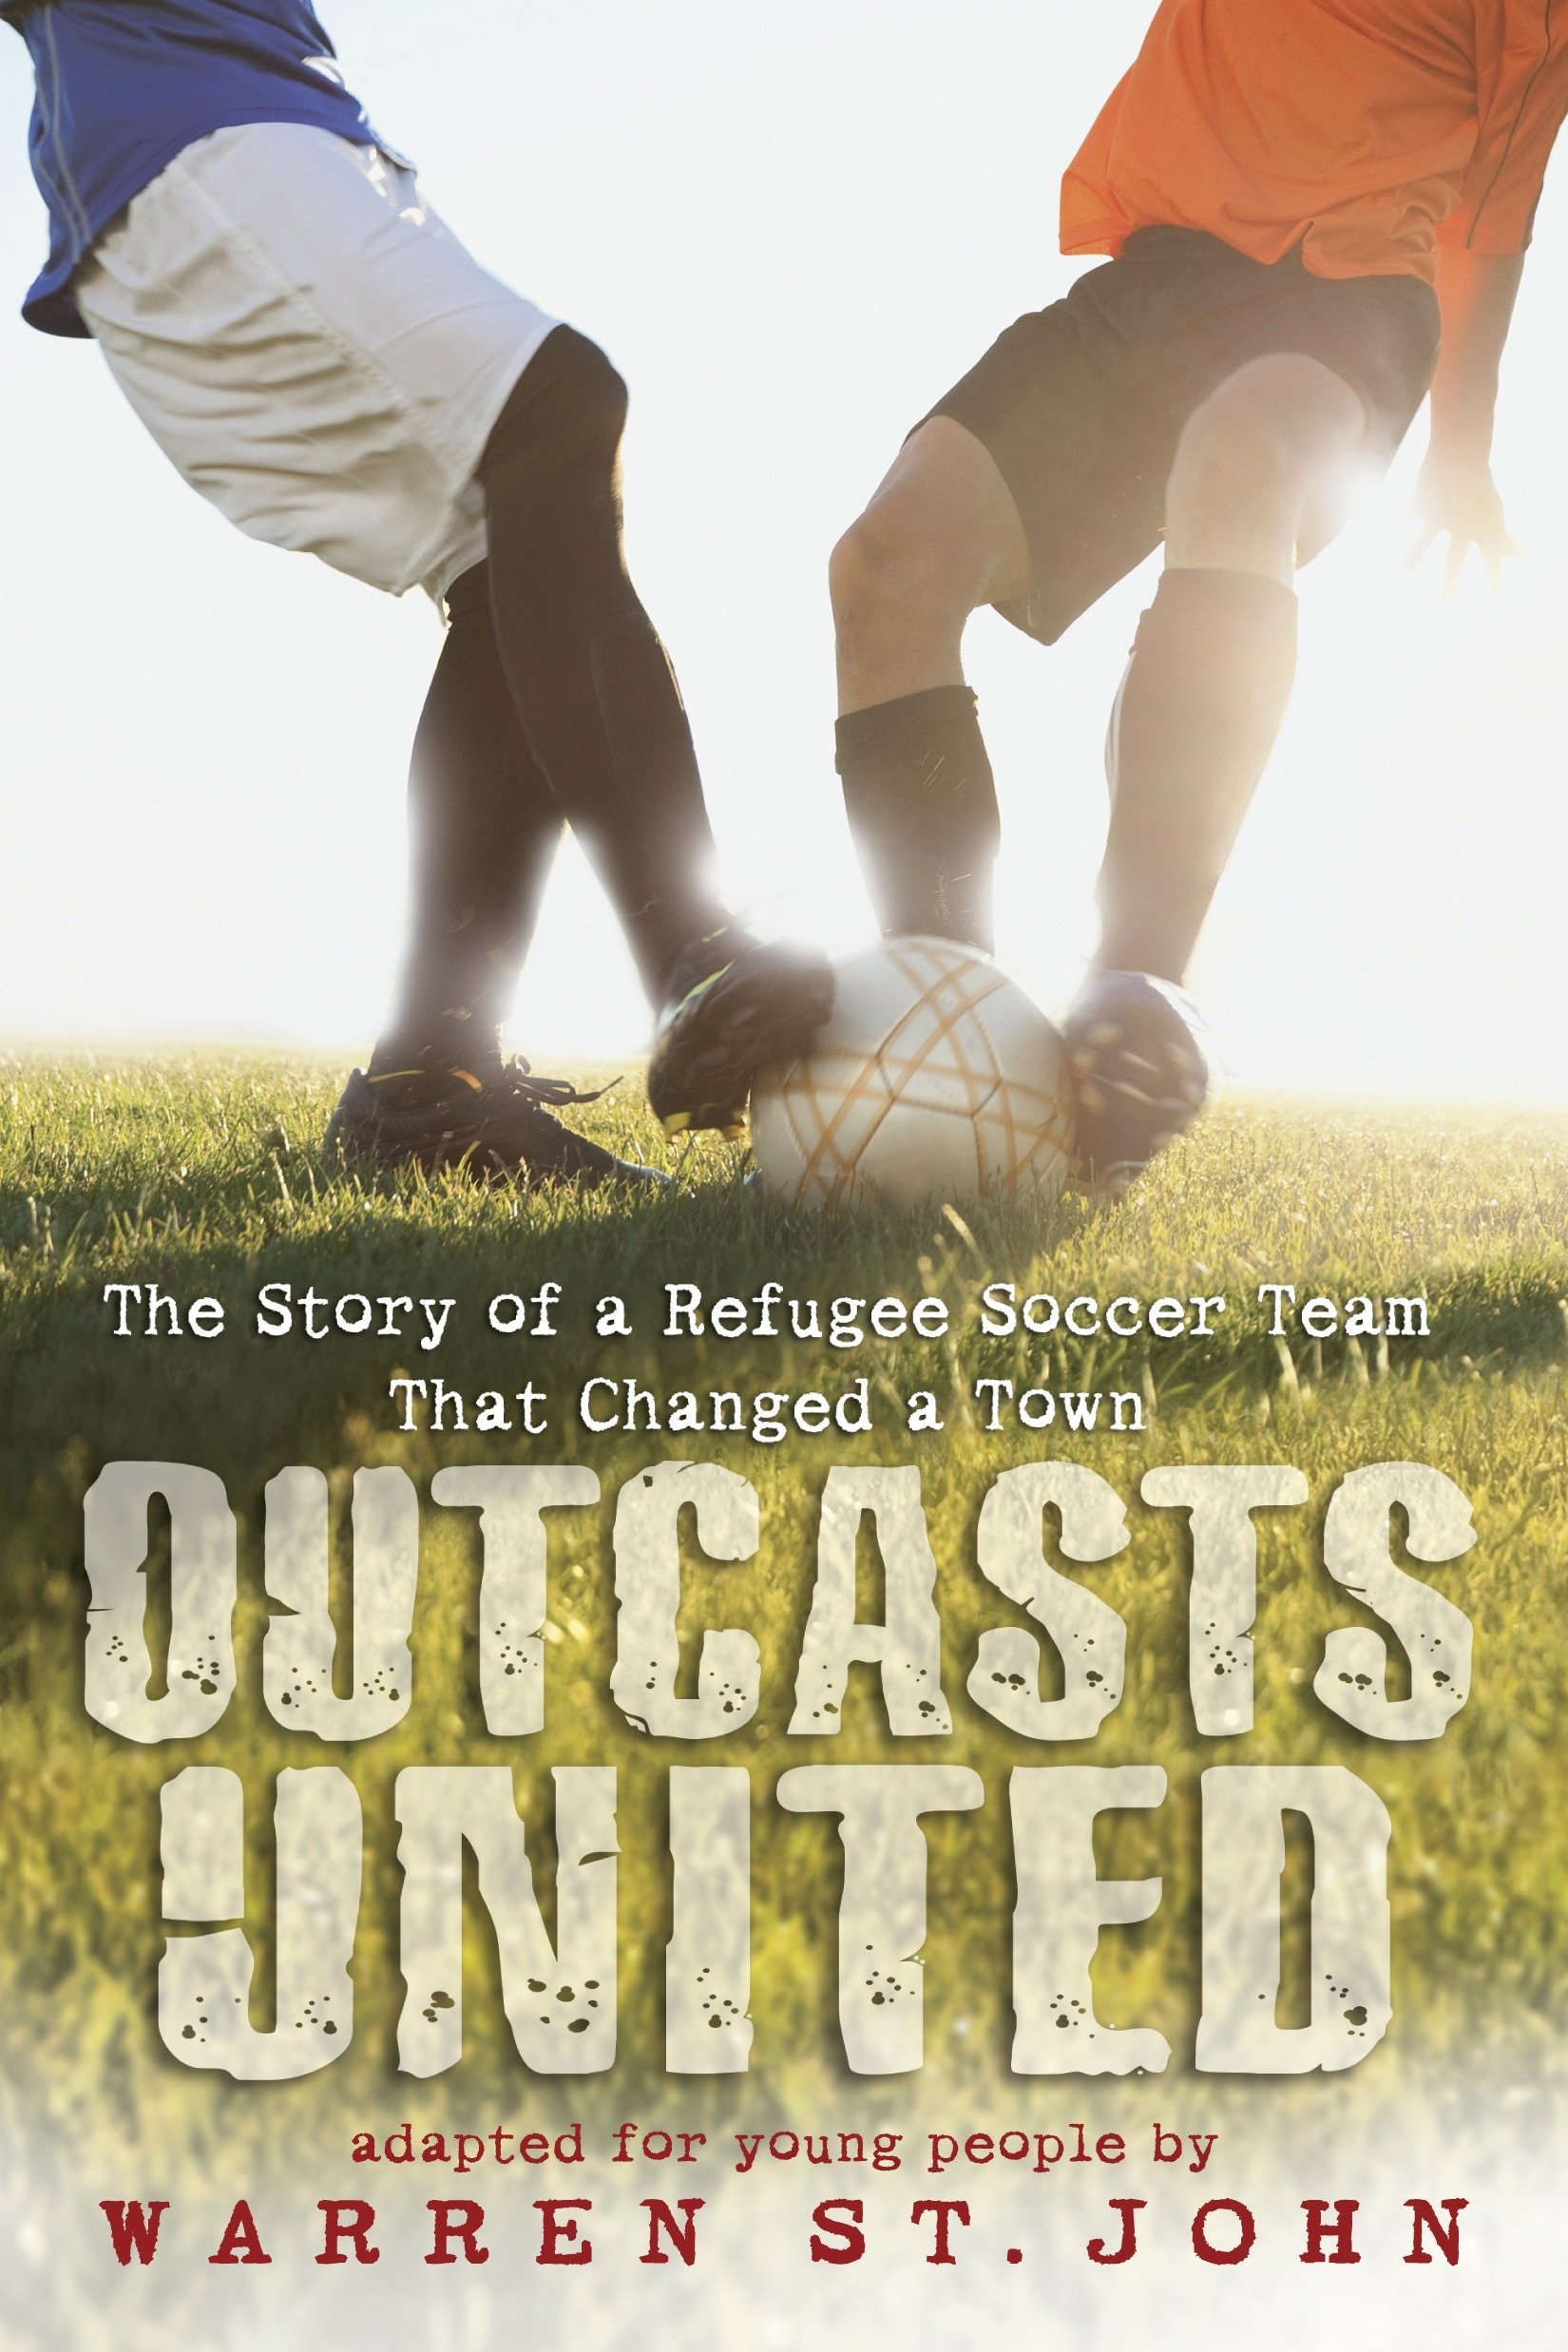 Sách - Outcasts United: The Story Of A Refugee Soccer Team That Changed A Town - Phương Nam Book